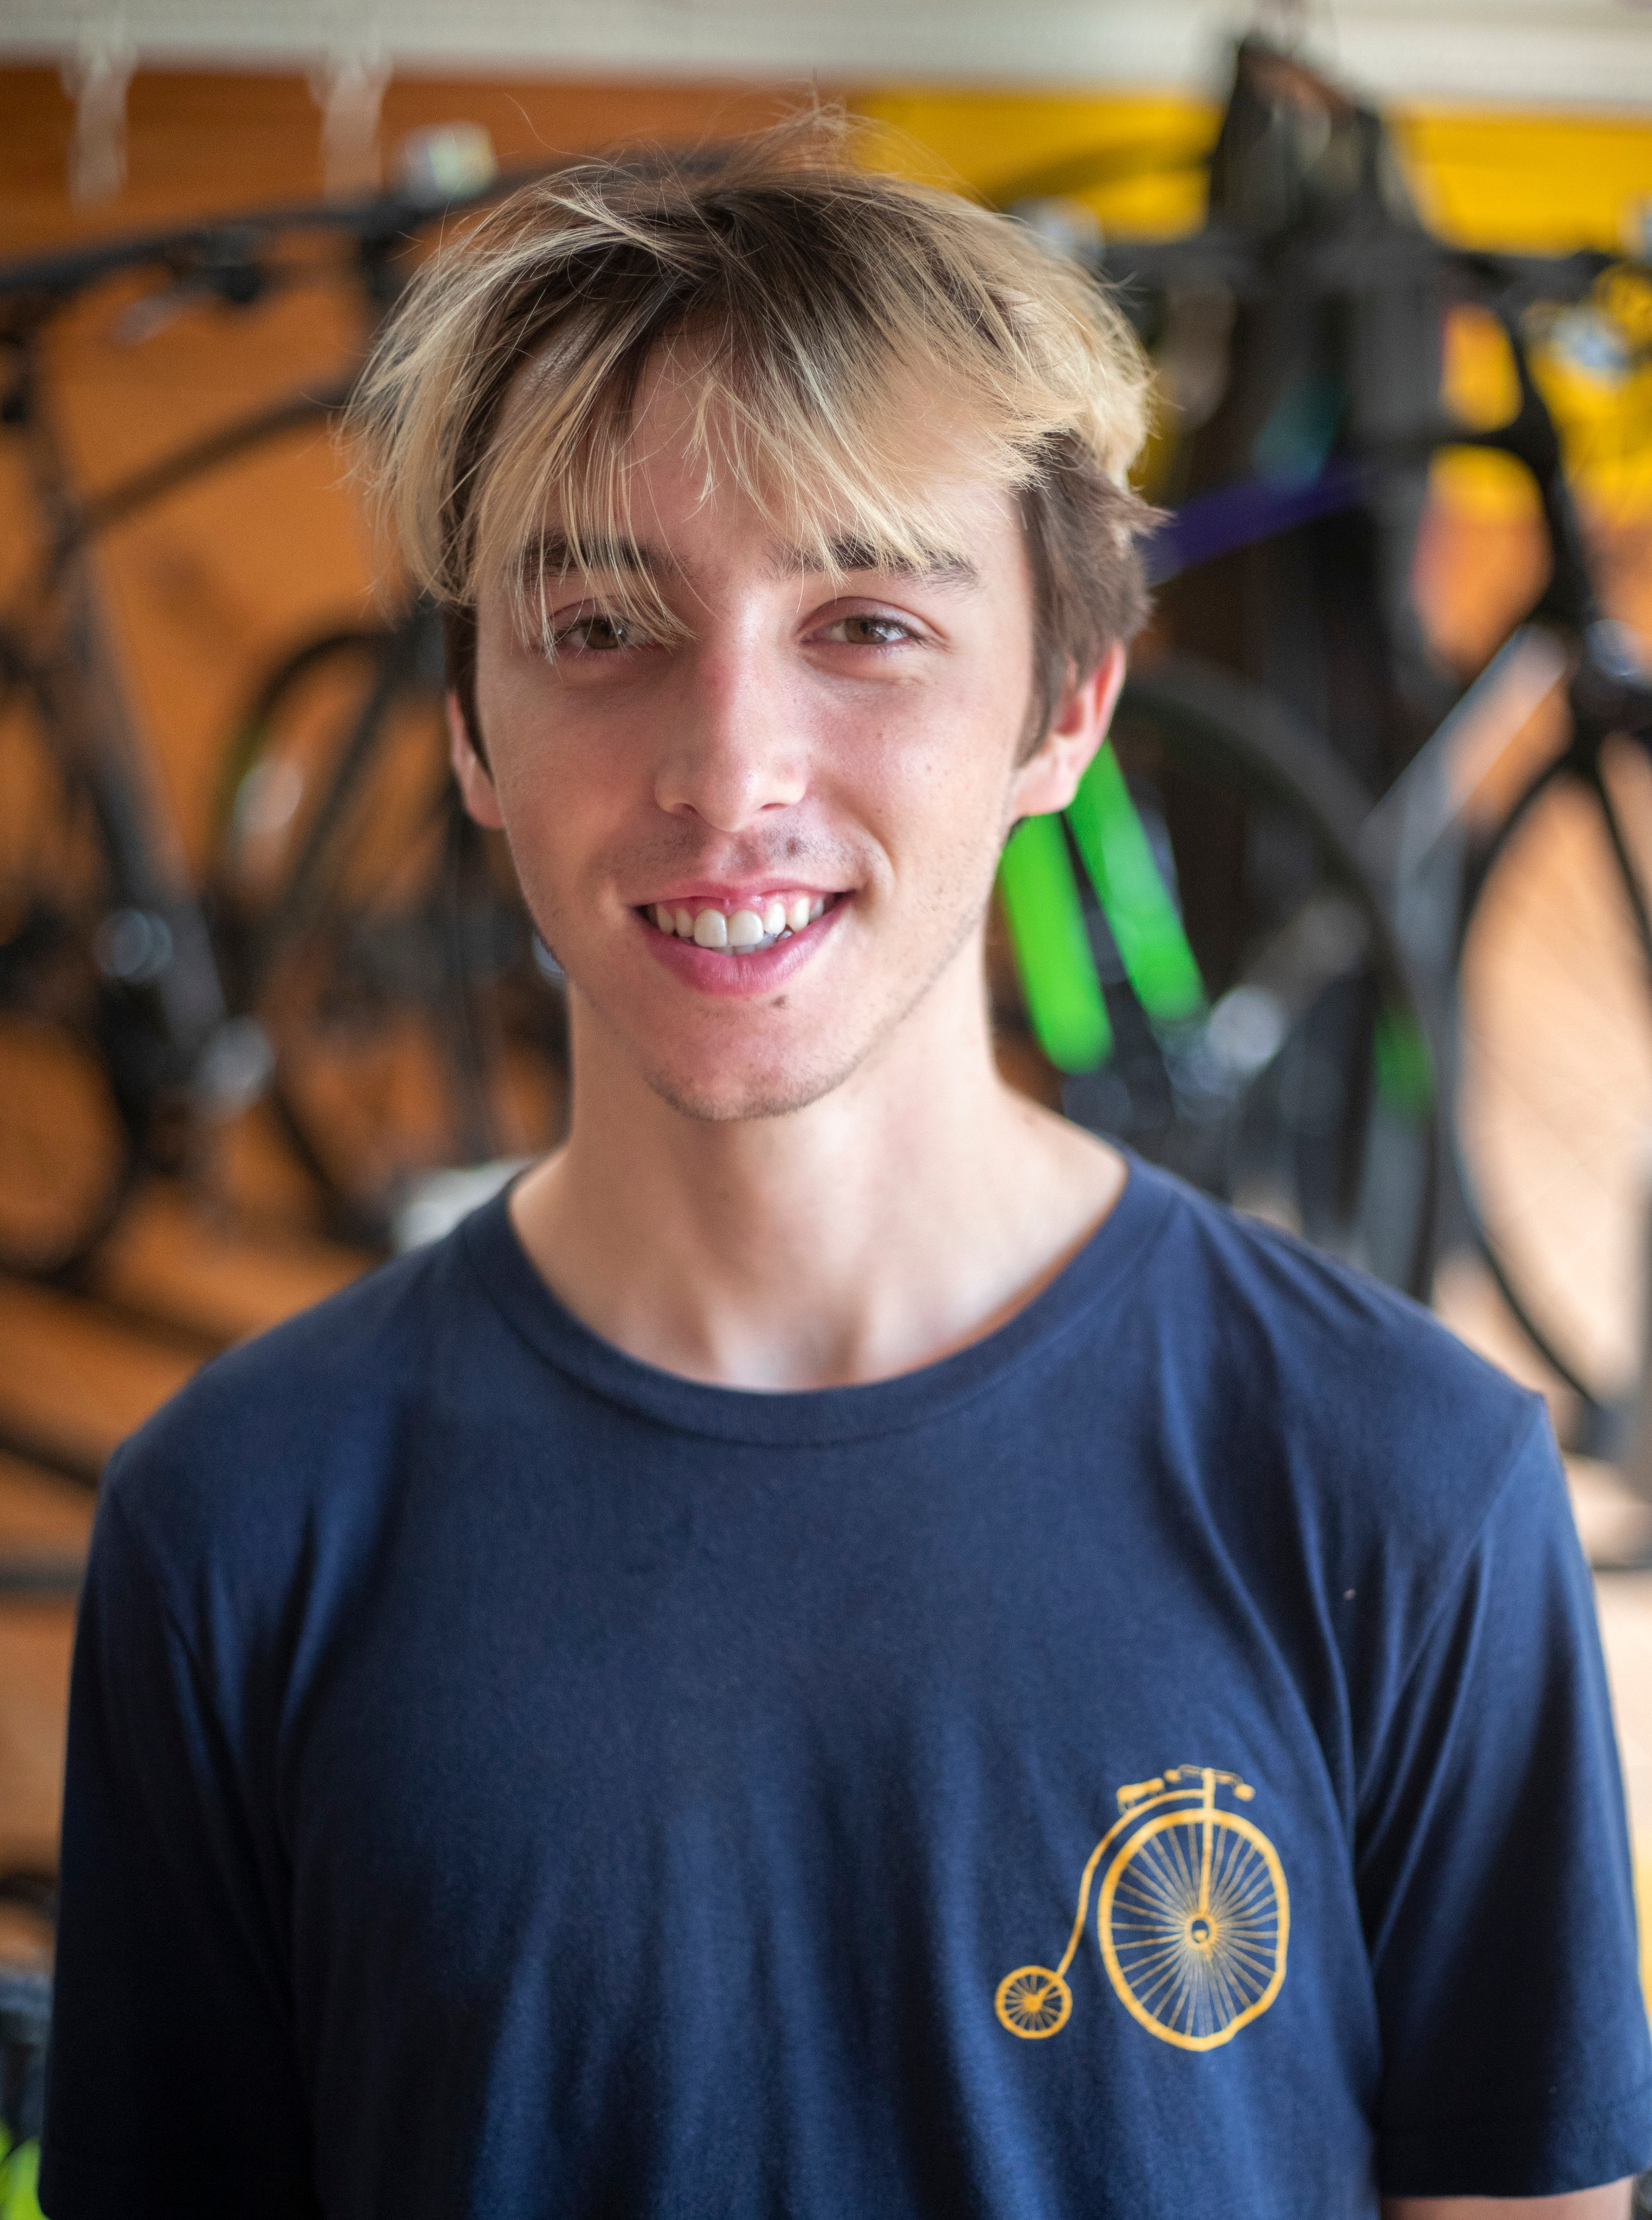 Nate    Hometown:  Pittsburgh, PA   Experience:  Has worked at bike shops and has been into racing and riding for four years and has been working here since 2018.   Favorite Bike:  Cinelli Mash Parallax Fixed Gear   What do you do when you are not on the bike?  Works on music and reads/writes.